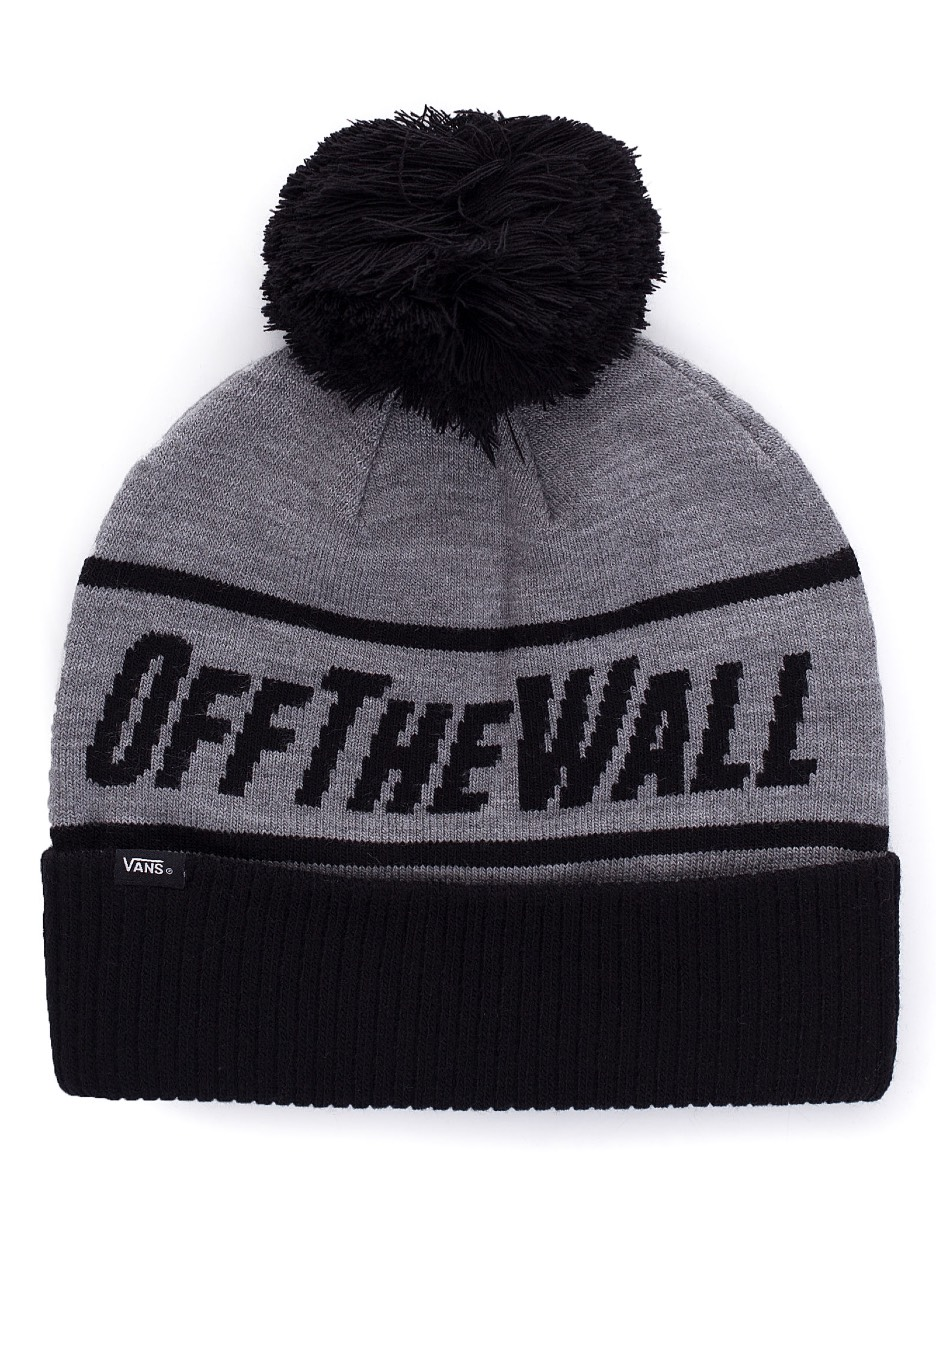 e2773aeb0e Vans - OFF THE WALL Heather Grey - Beanie - Impericon.com US